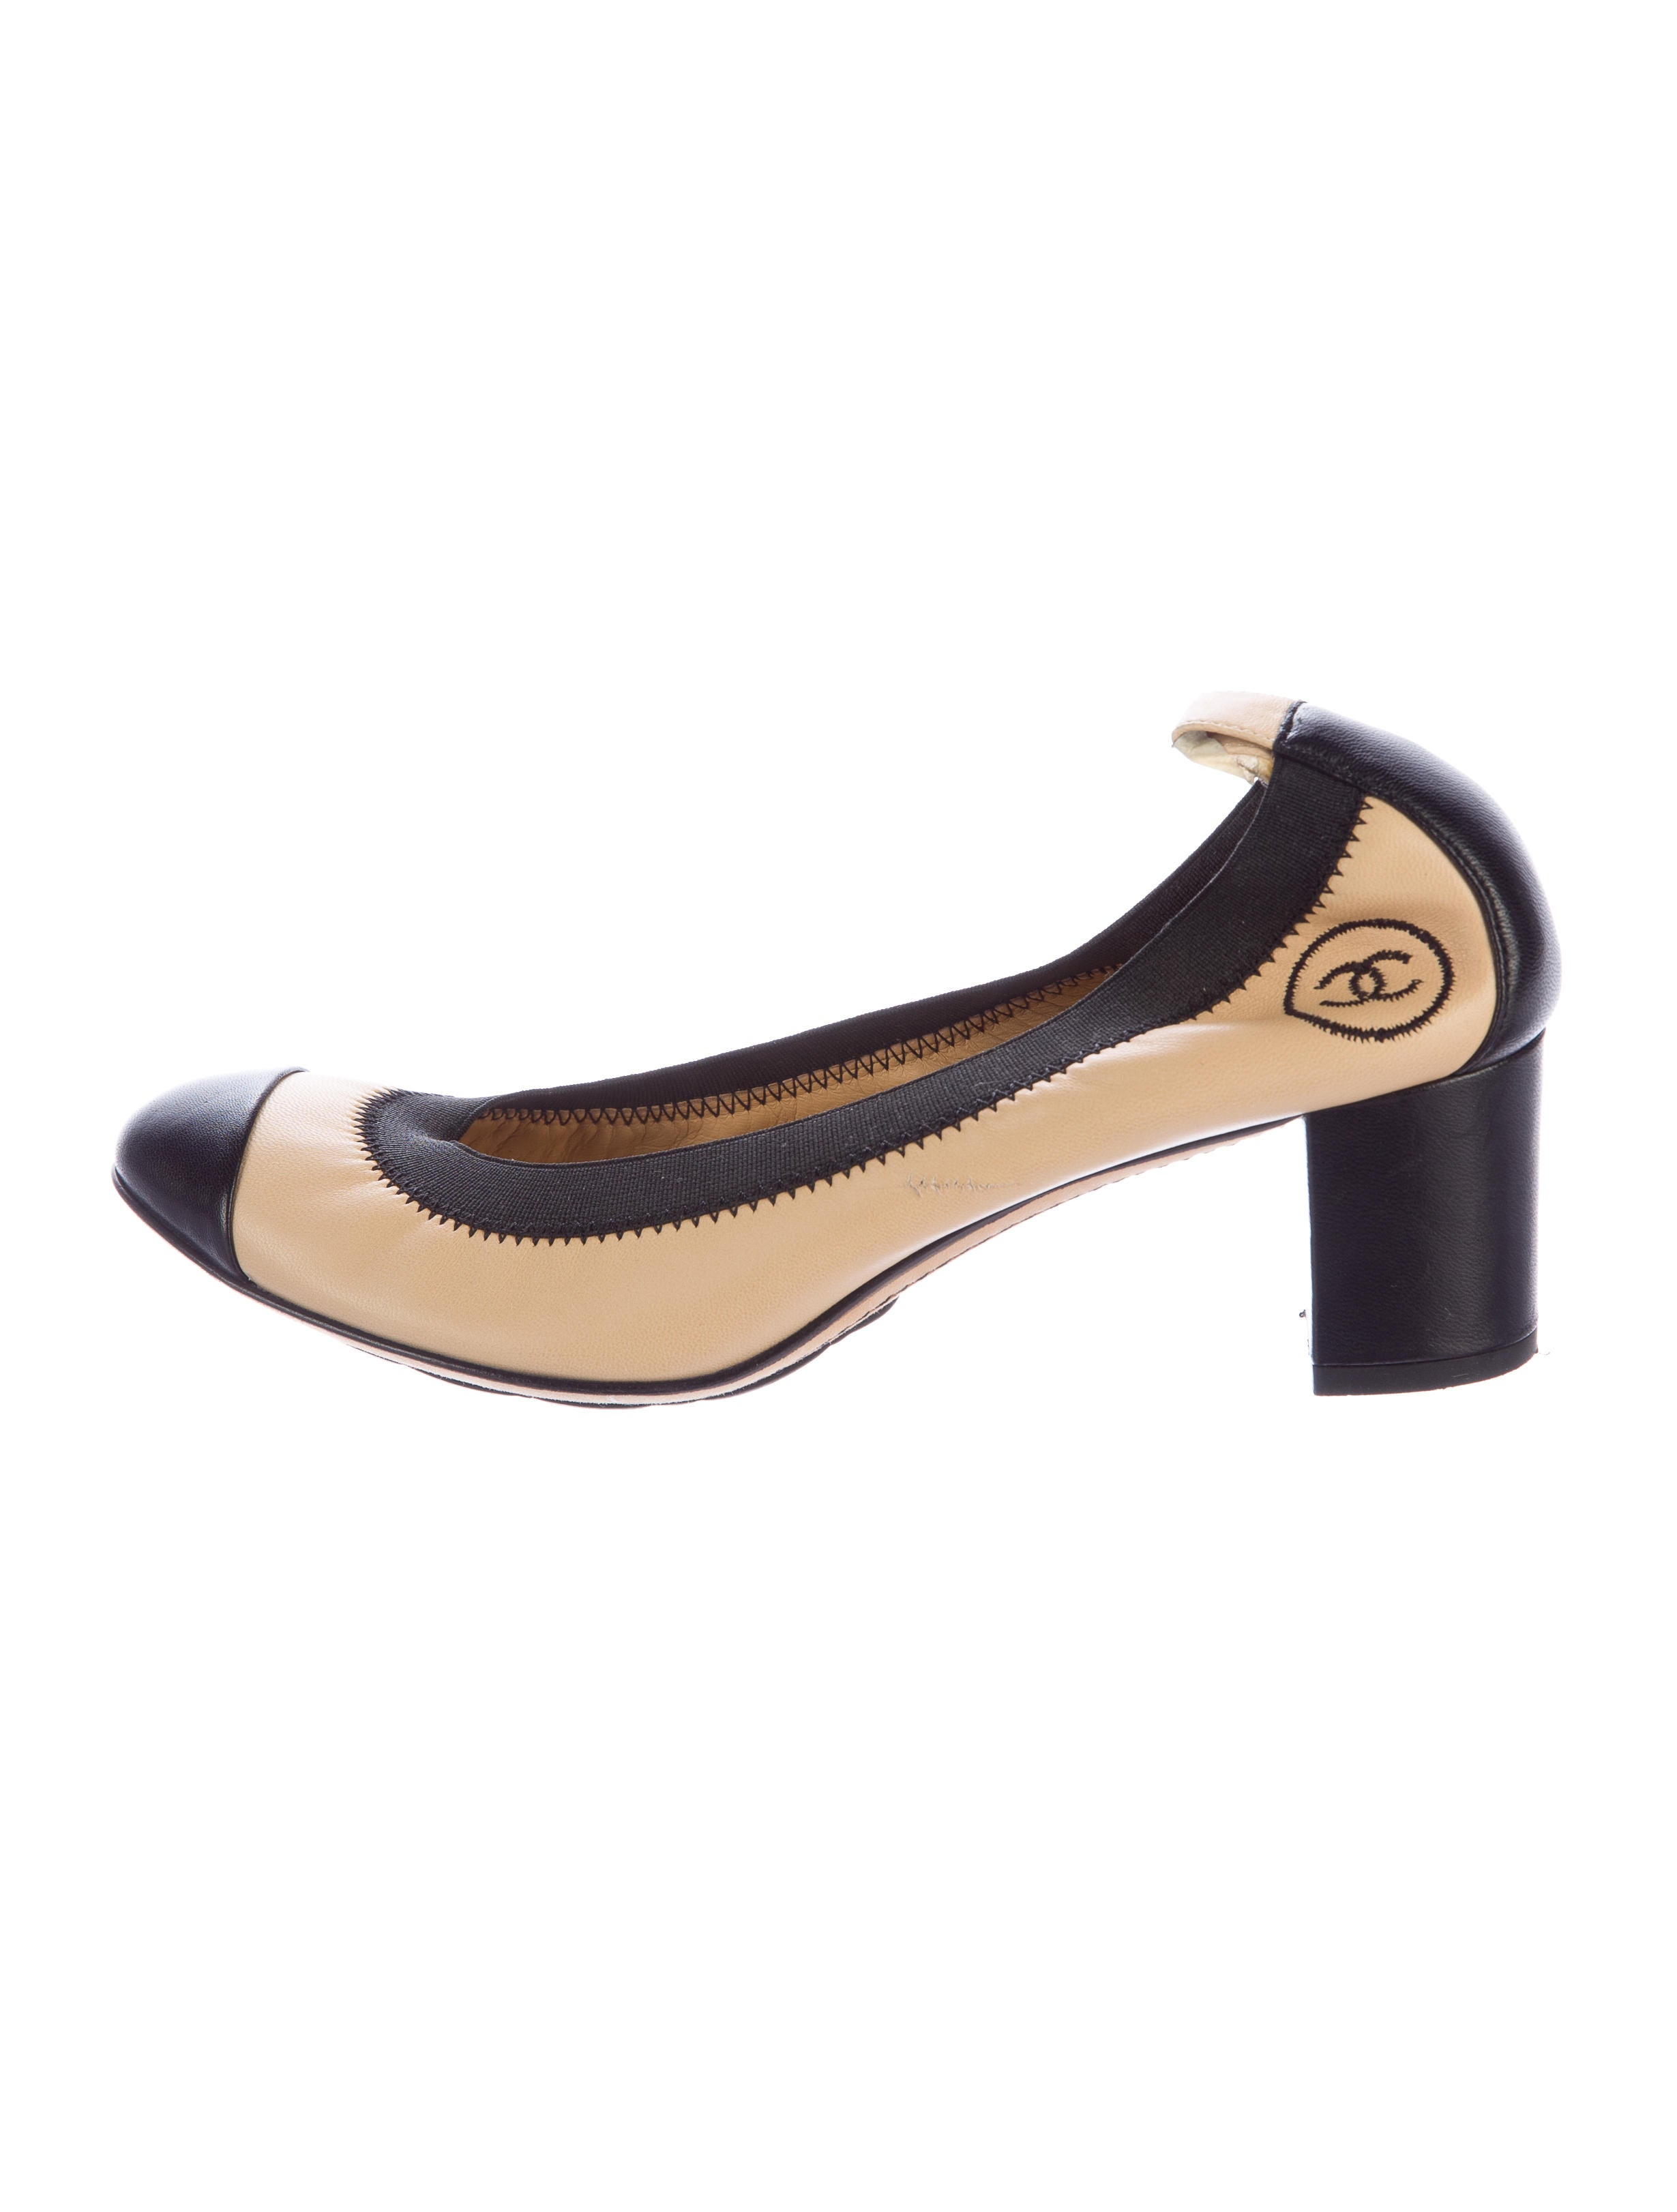 chanel leather stretch spirit pumps shoes cha154671